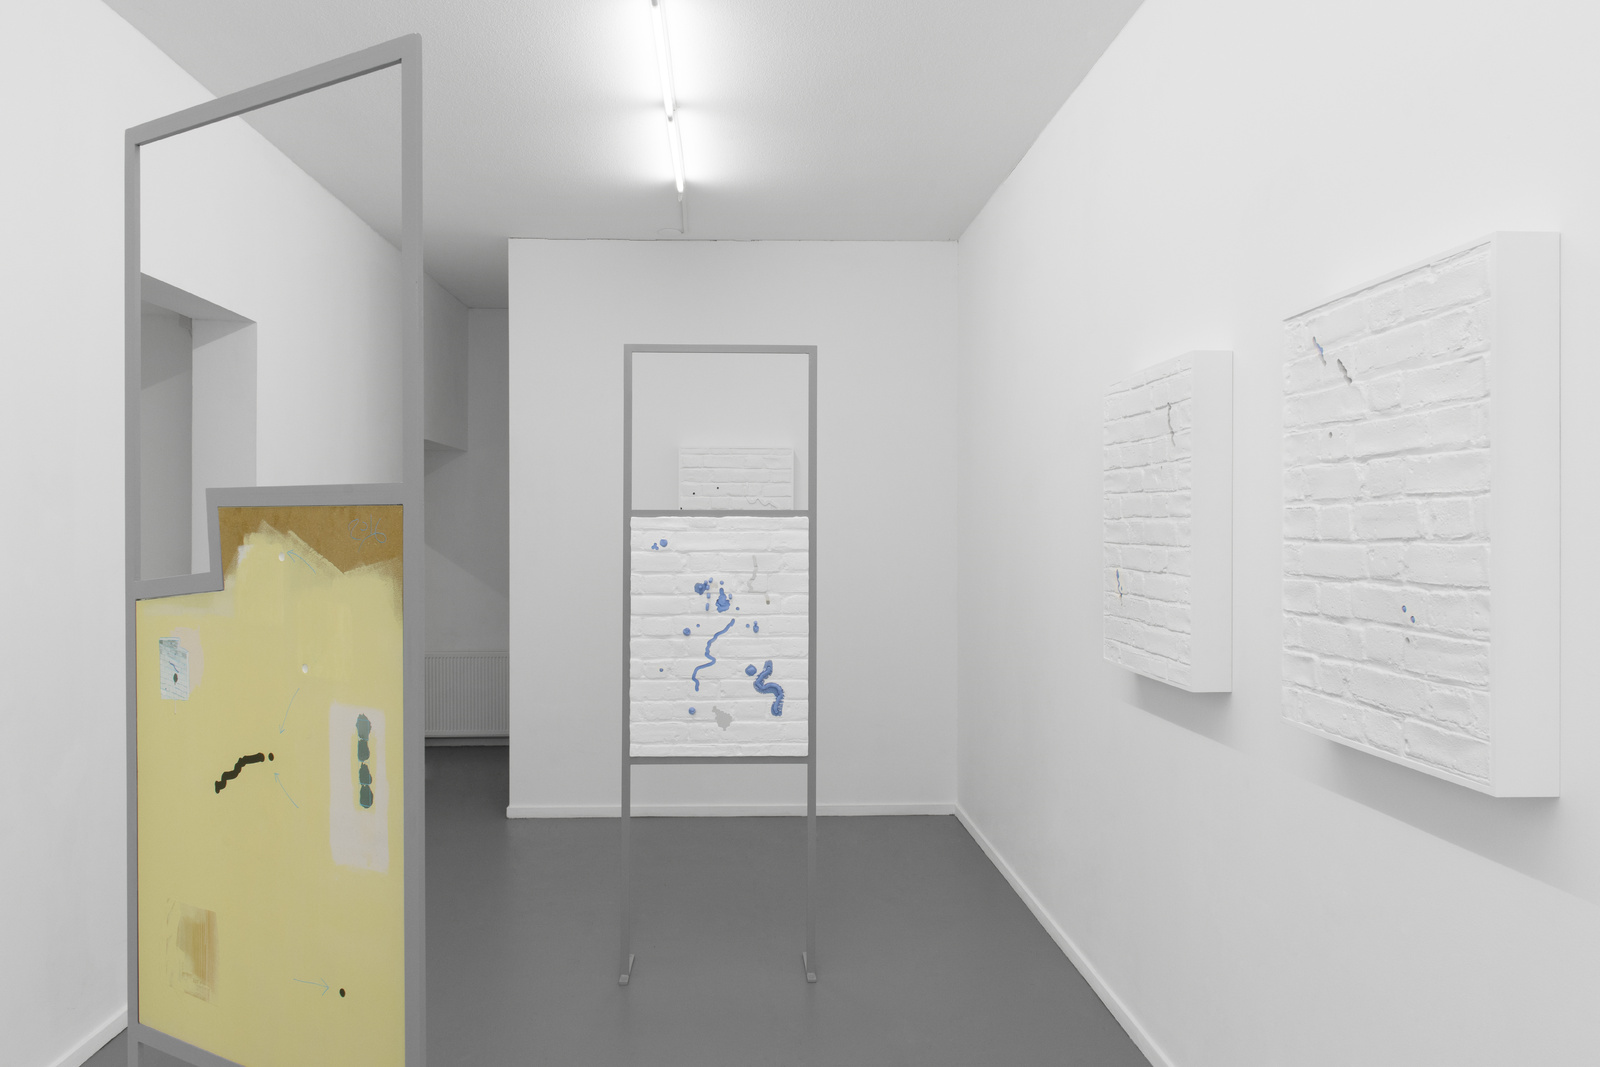 Installation view 2 (Front Gallery)